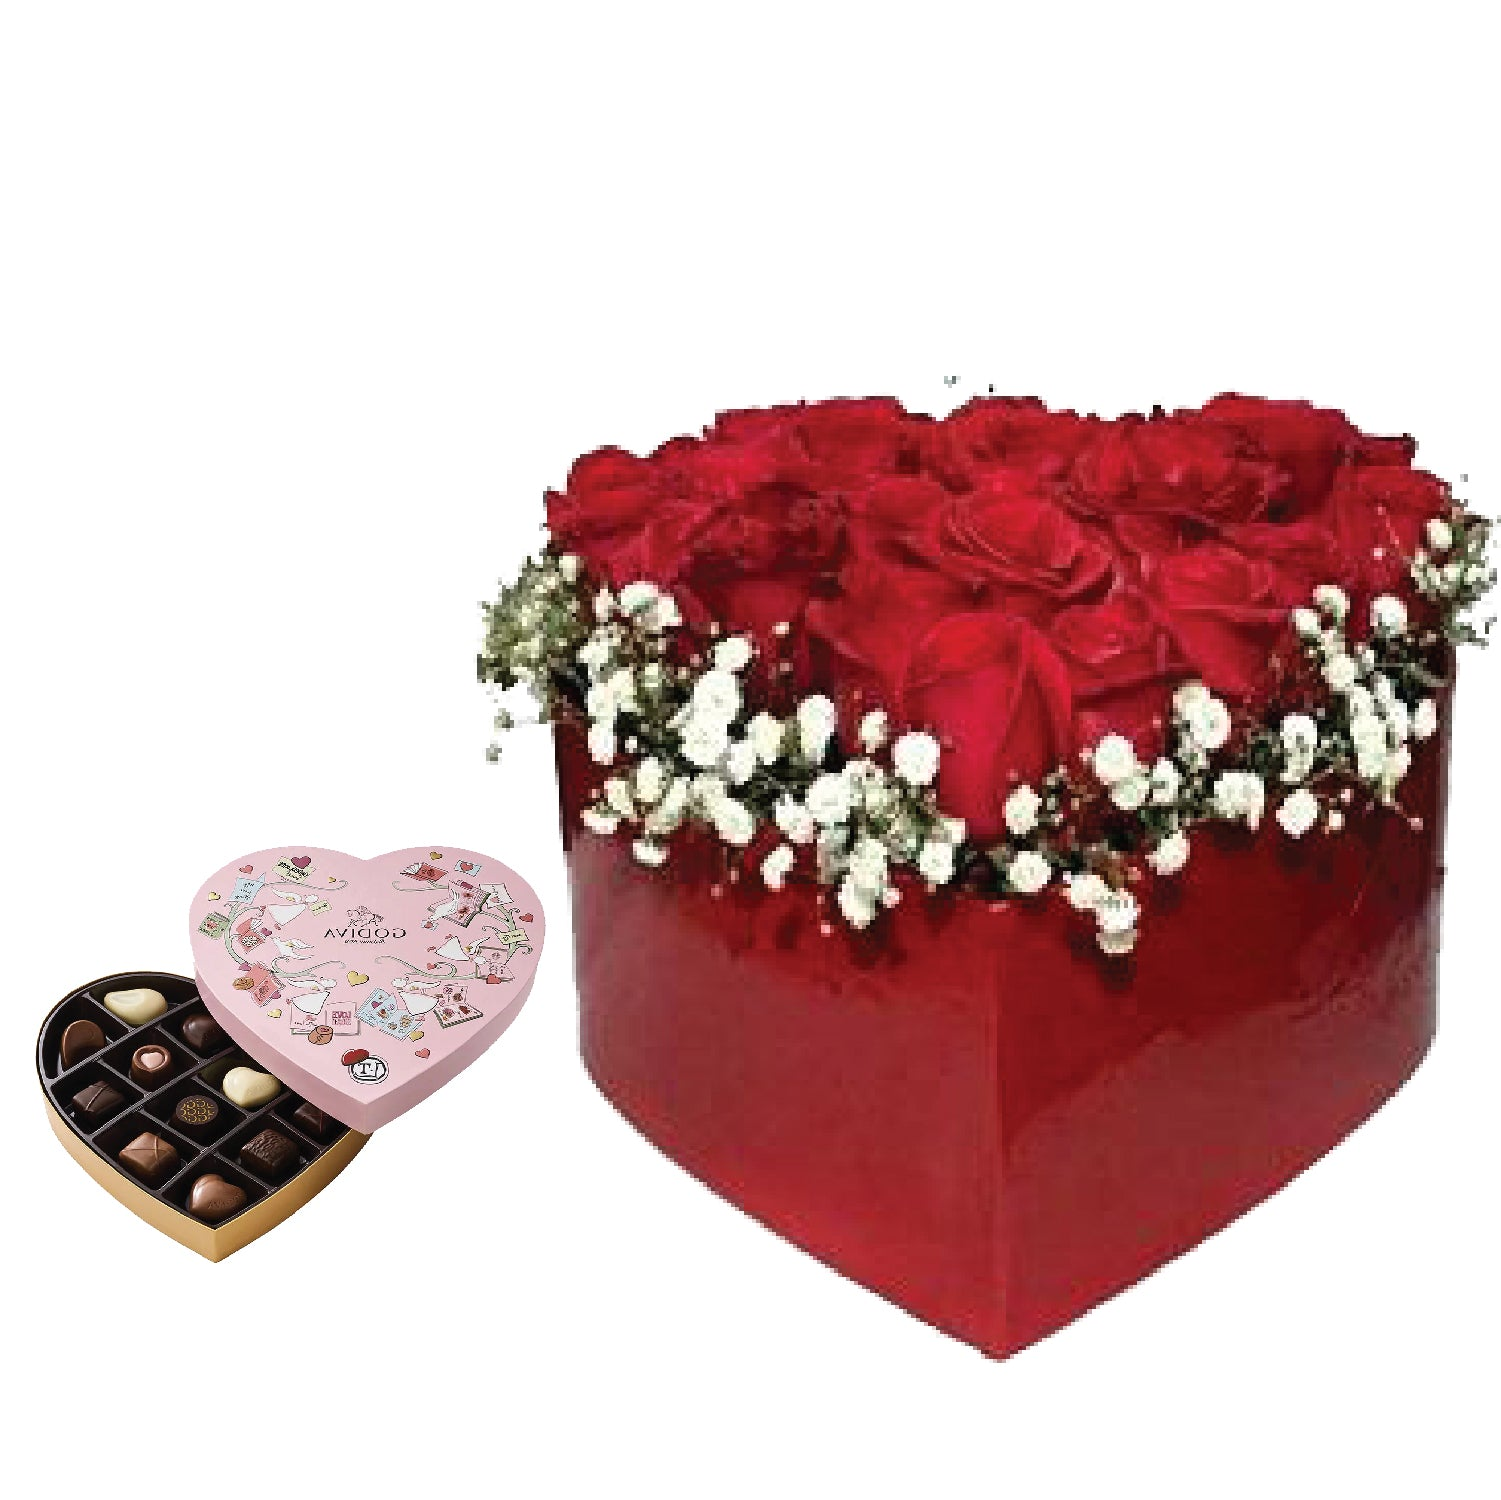 Affection  One Box of Godiva Heart Chocolate Gift Box